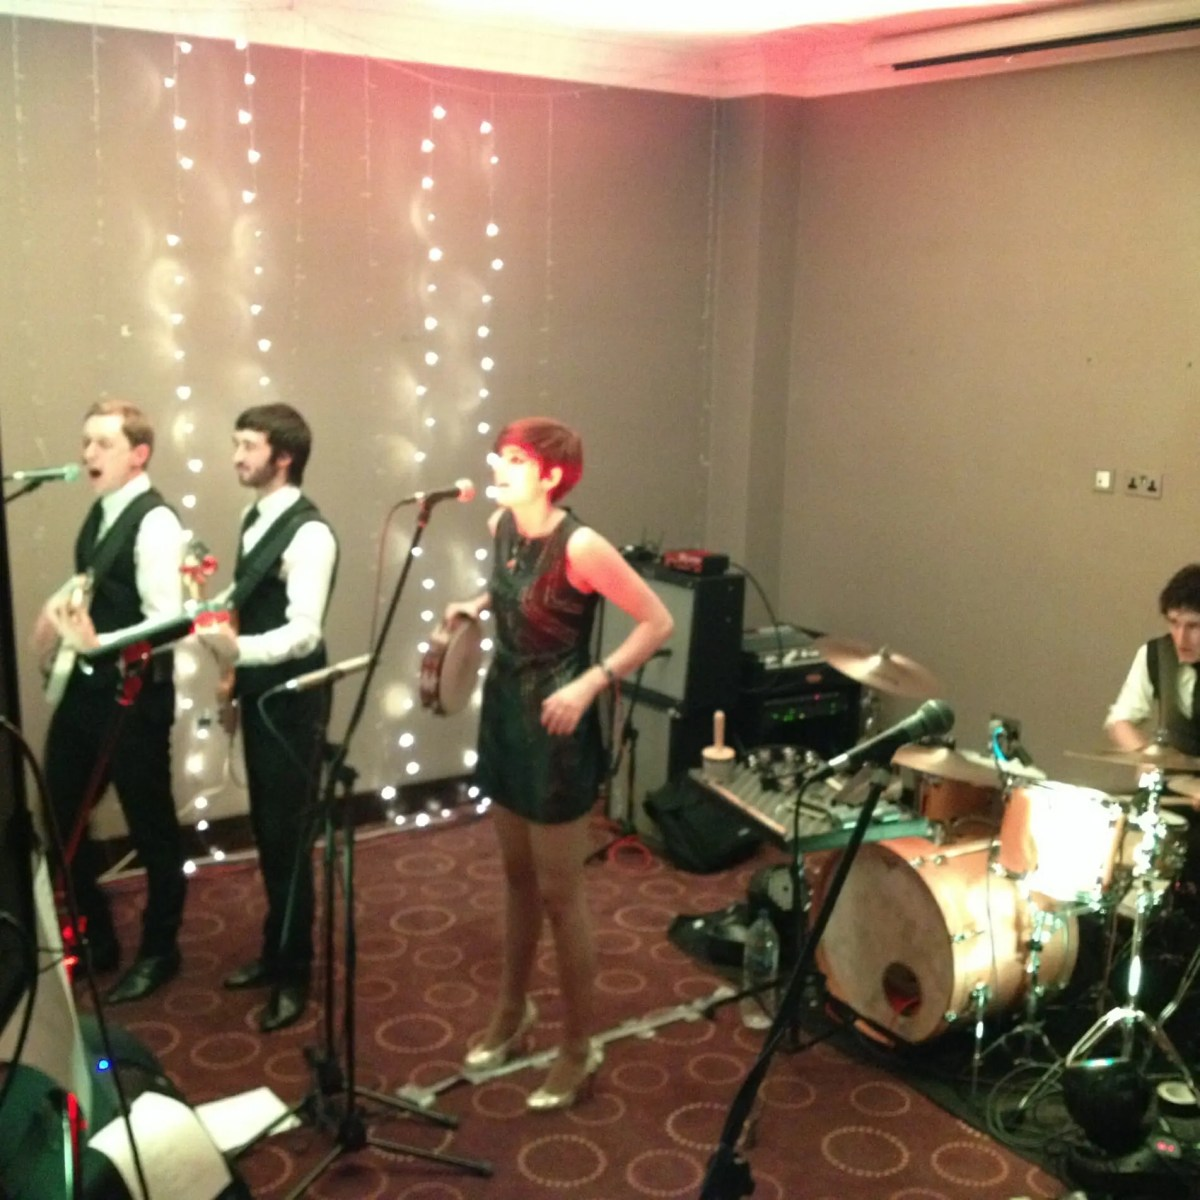 The Zoots wedding band in London performing at the Montcalm Hotel, Theatre band, 1960s tribute band, 1960s tribute show, band for university ball, cover band for party, party band in Berkshire, party band in Wiltshire, party band in Gloucester, wedding band in warwickshire, great wedding band, excellent wedding band, band for university ball, band who play theatre